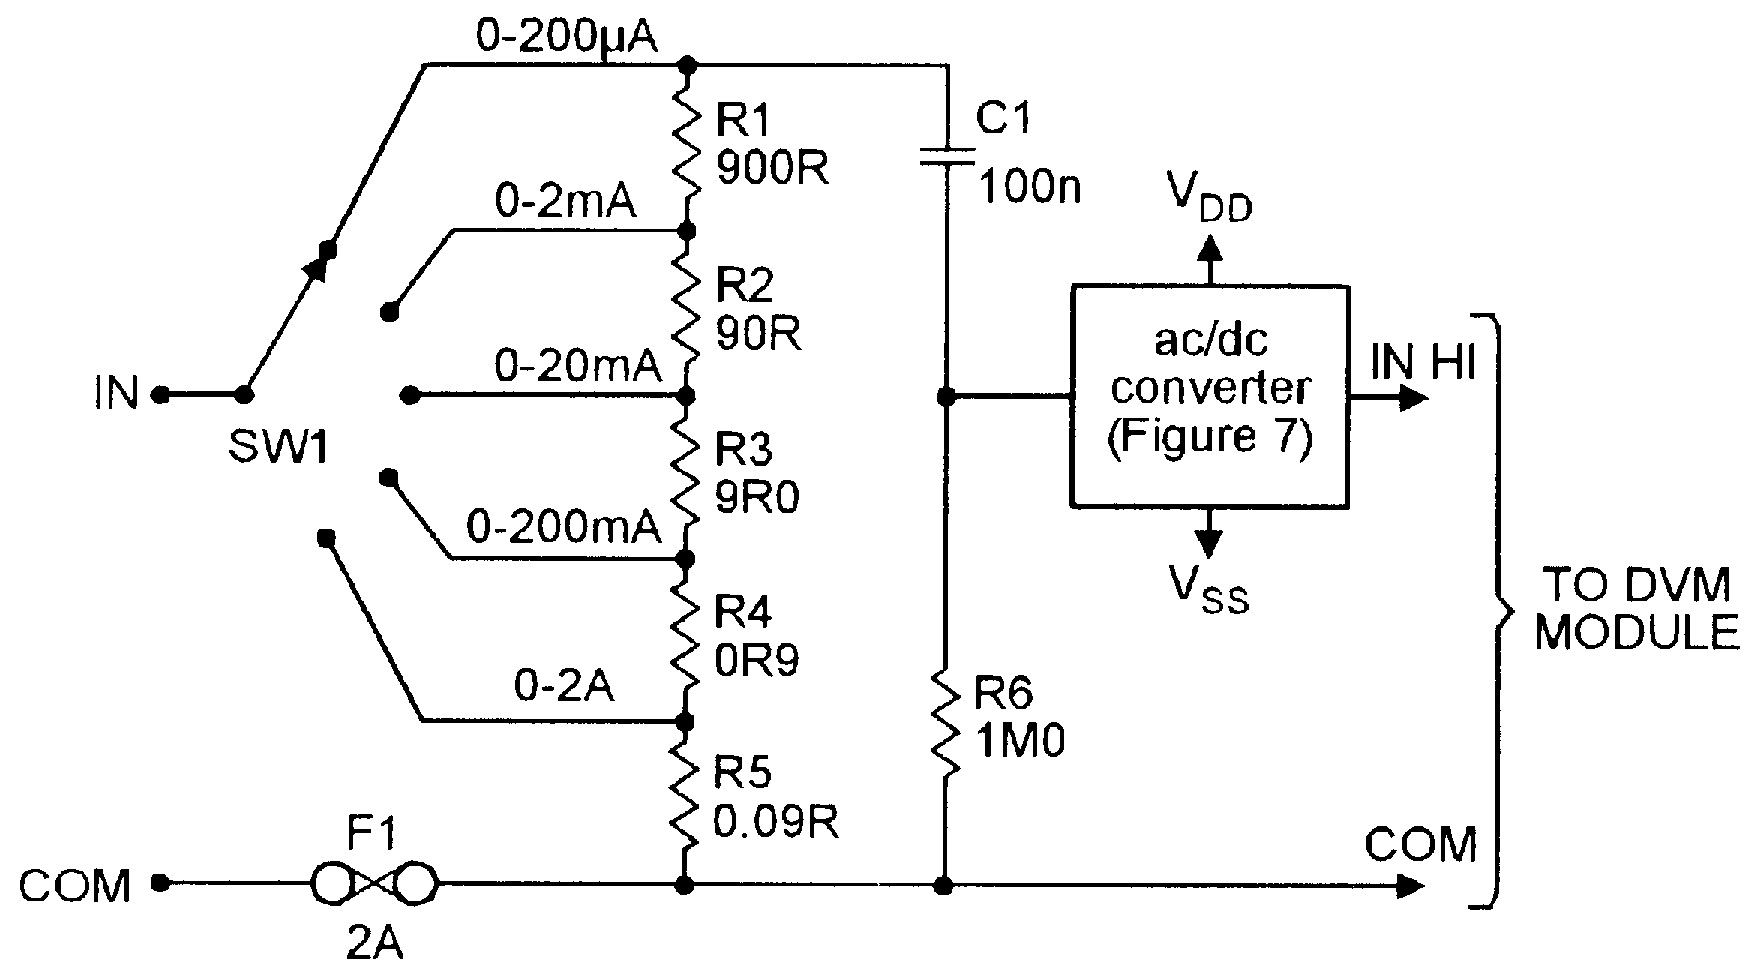 Five-range AC current-meter converter for use with DVM modules.